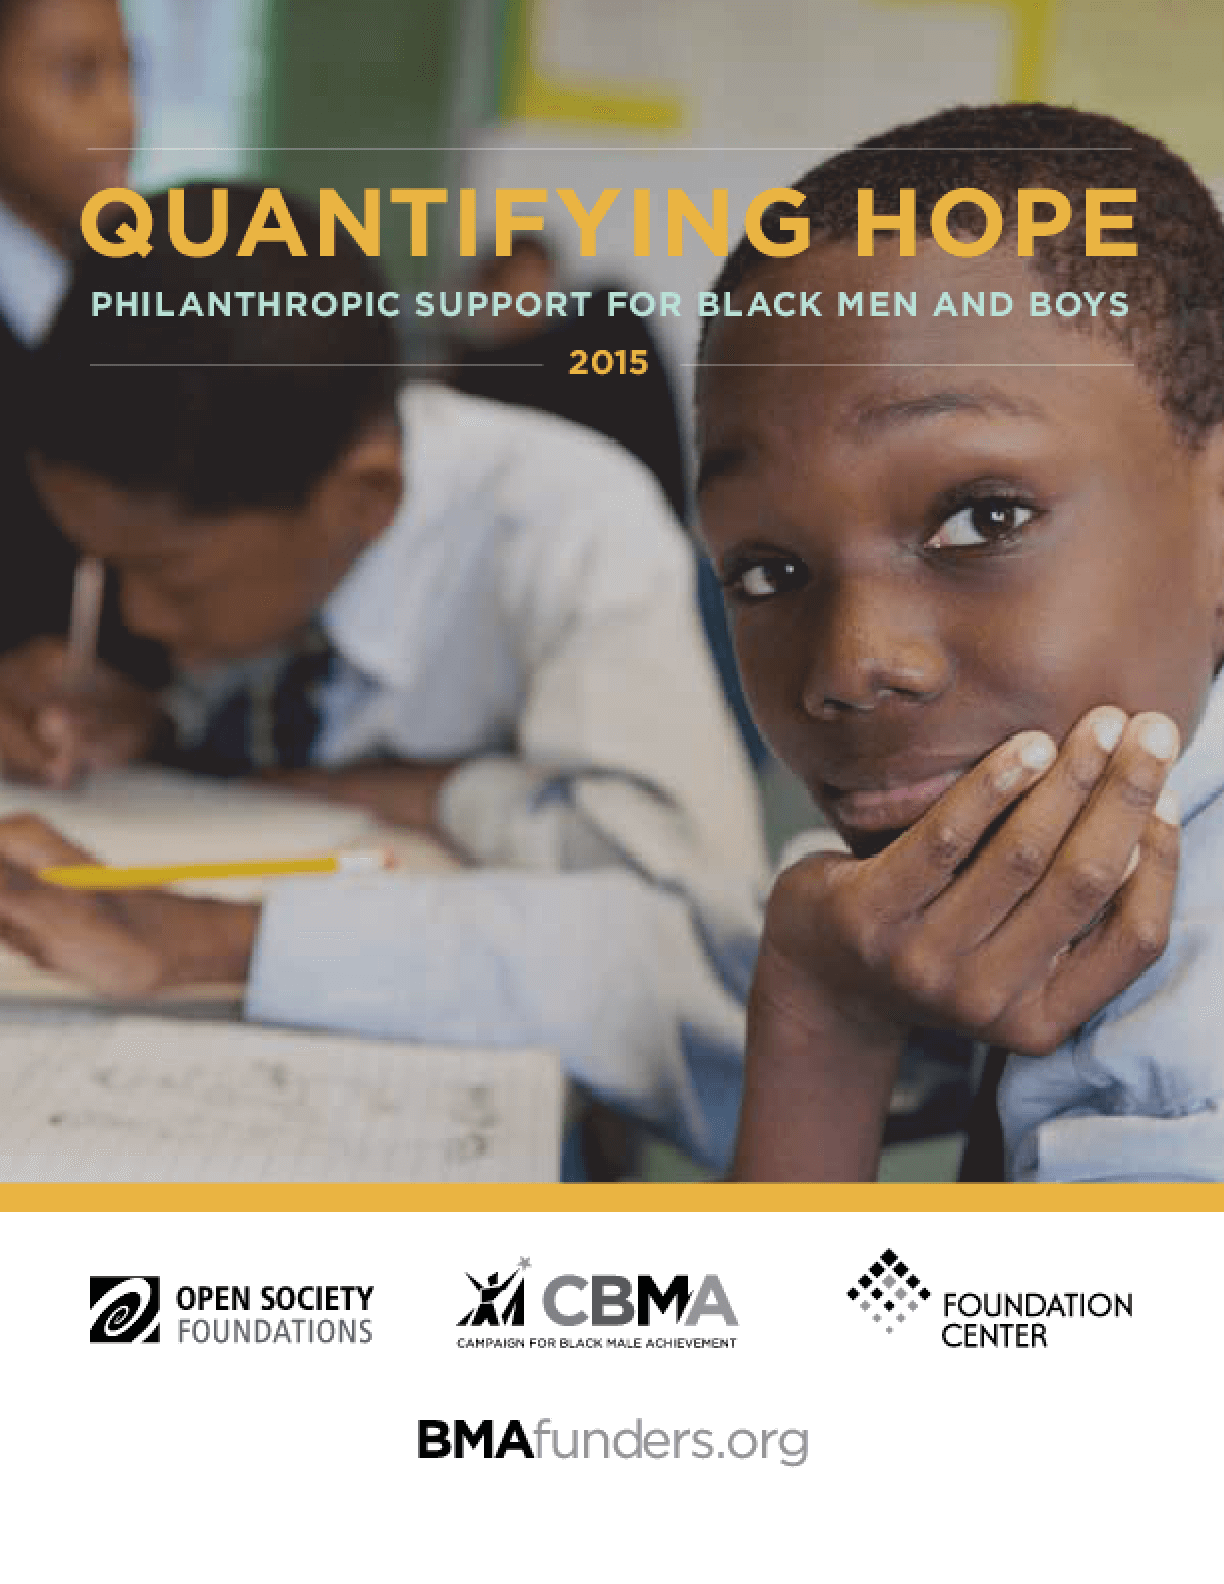 Quantifying Hope: Philanthropic Support for Black Men and Boys